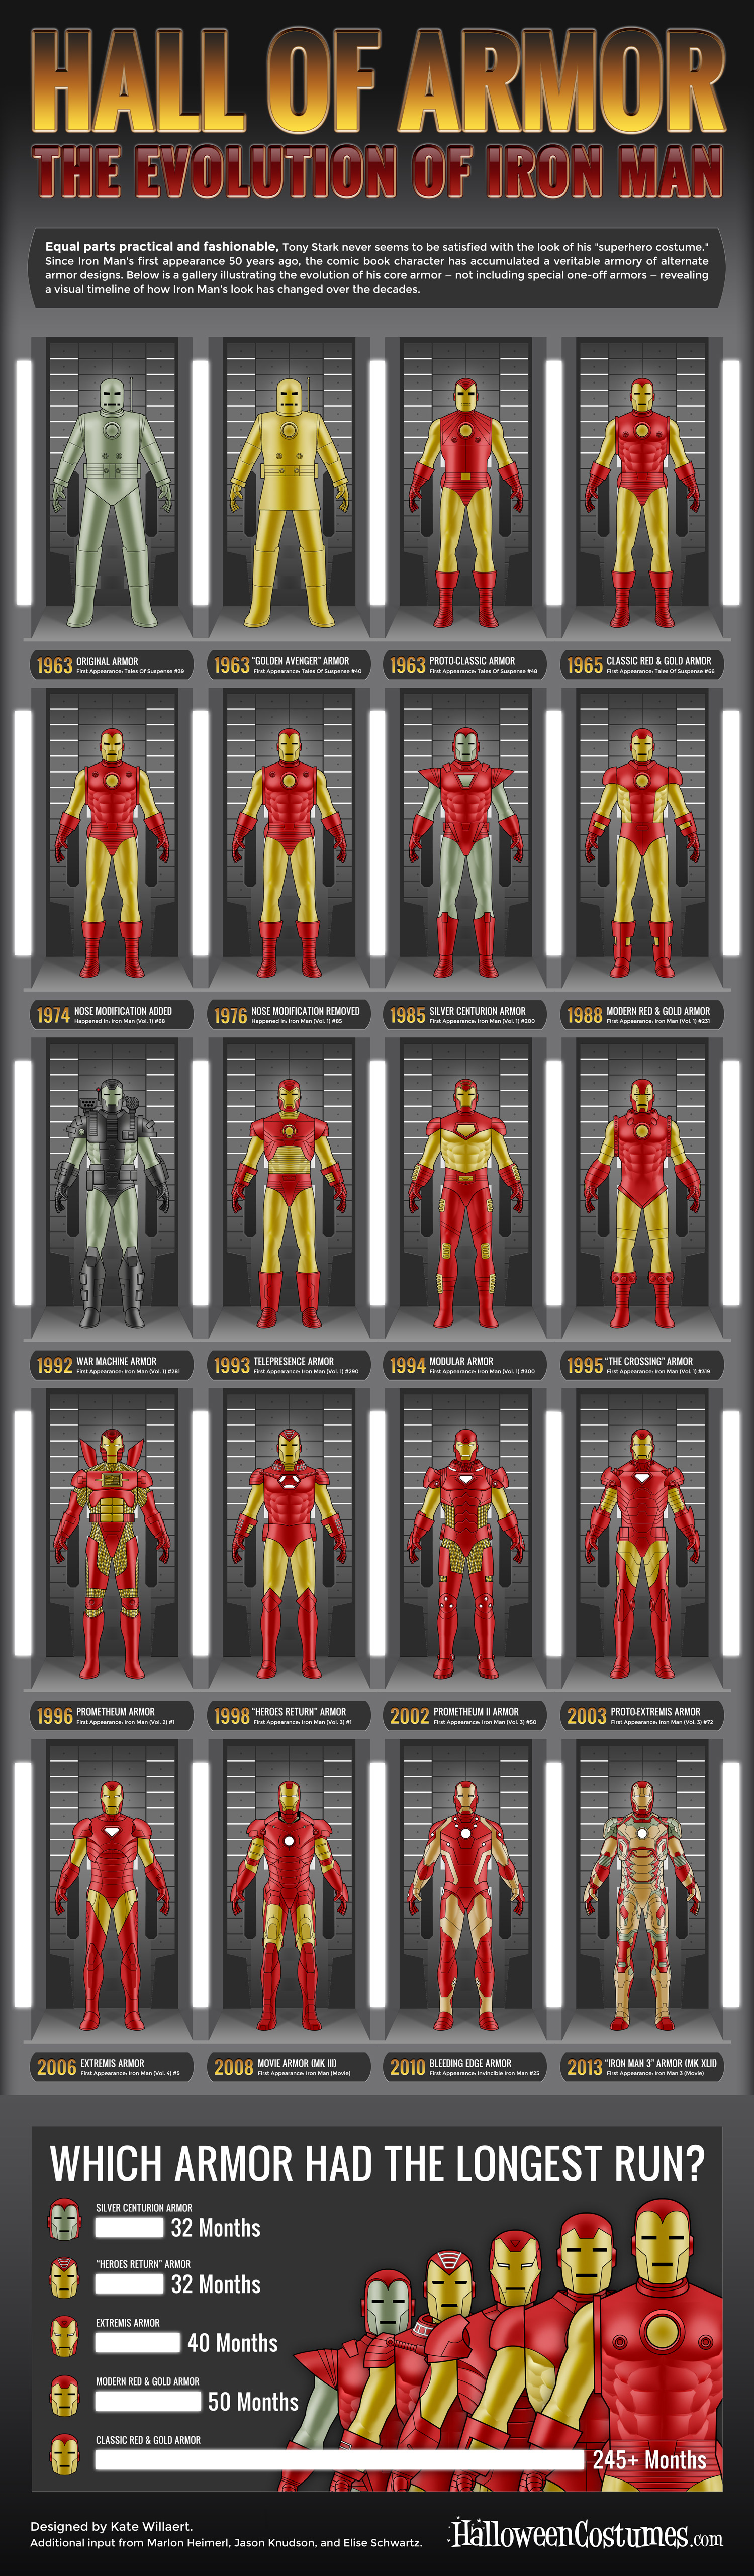 Iron Man Armor Infographic